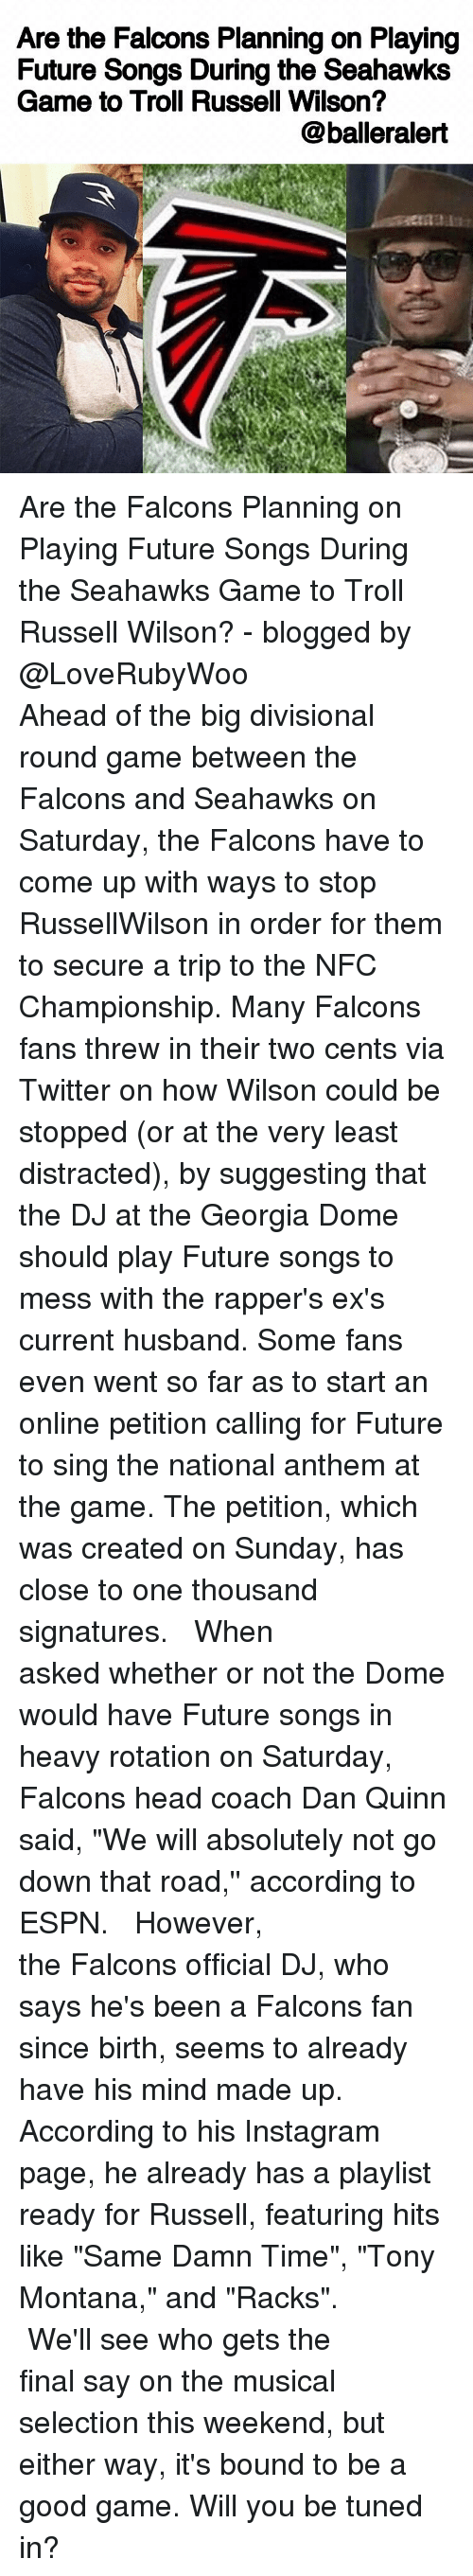 """Two Cents: Are the Falcons Planning on Playing  Future Songs During the Seahawks  Game to Troll Russell Wilson?  @balleralert Are the Falcons Planning on Playing Future Songs During the Seahawks Game to Troll Russell Wilson? - blogged by @LoveRubyWoo ⠀⠀⠀⠀⠀⠀⠀⠀⠀ ⠀⠀⠀⠀⠀⠀⠀⠀⠀ Ahead of the big divisional round game between the Falcons and Seahawks on Saturday, the Falcons have to come up with ways to stop RussellWilson in order for them to secure a trip to the NFC Championship. Many Falcons fans threw in their two cents via Twitter on how Wilson could be stopped (or at the very least distracted), by suggesting that the DJ at the Georgia Dome should play Future songs to mess with the rapper's ex's current husband. Some fans even went so far as to start an online petition calling for Future to sing the national anthem at the game. The petition, which was created on Sunday, has close to one thousand signatures. ⠀⠀⠀⠀⠀⠀⠀⠀⠀ ⠀⠀⠀⠀⠀⠀⠀⠀⠀ When asked whether or not the Dome would have Future songs in heavy rotation on Saturday, Falcons head coach Dan Quinn said, """"We will absolutely not go down that road,'' according to ESPN. ⠀⠀⠀⠀⠀⠀⠀⠀⠀ ⠀⠀⠀⠀⠀⠀⠀⠀⠀ However, the Falcons official DJ, who says he's been a Falcons fan since birth, seems to already have his mind made up. According to his Instagram page, he already has a playlist ready for Russell, featuring hits like """"Same Damn Time"""", """"Tony Montana,"""" and """"Racks"""". ⠀⠀⠀⠀⠀⠀⠀⠀⠀ ⠀⠀⠀⠀⠀⠀⠀⠀⠀ We'll see who gets the final say on the musical selection this weekend, but either way, it's bound to be a good game. Will you be tuned in?"""